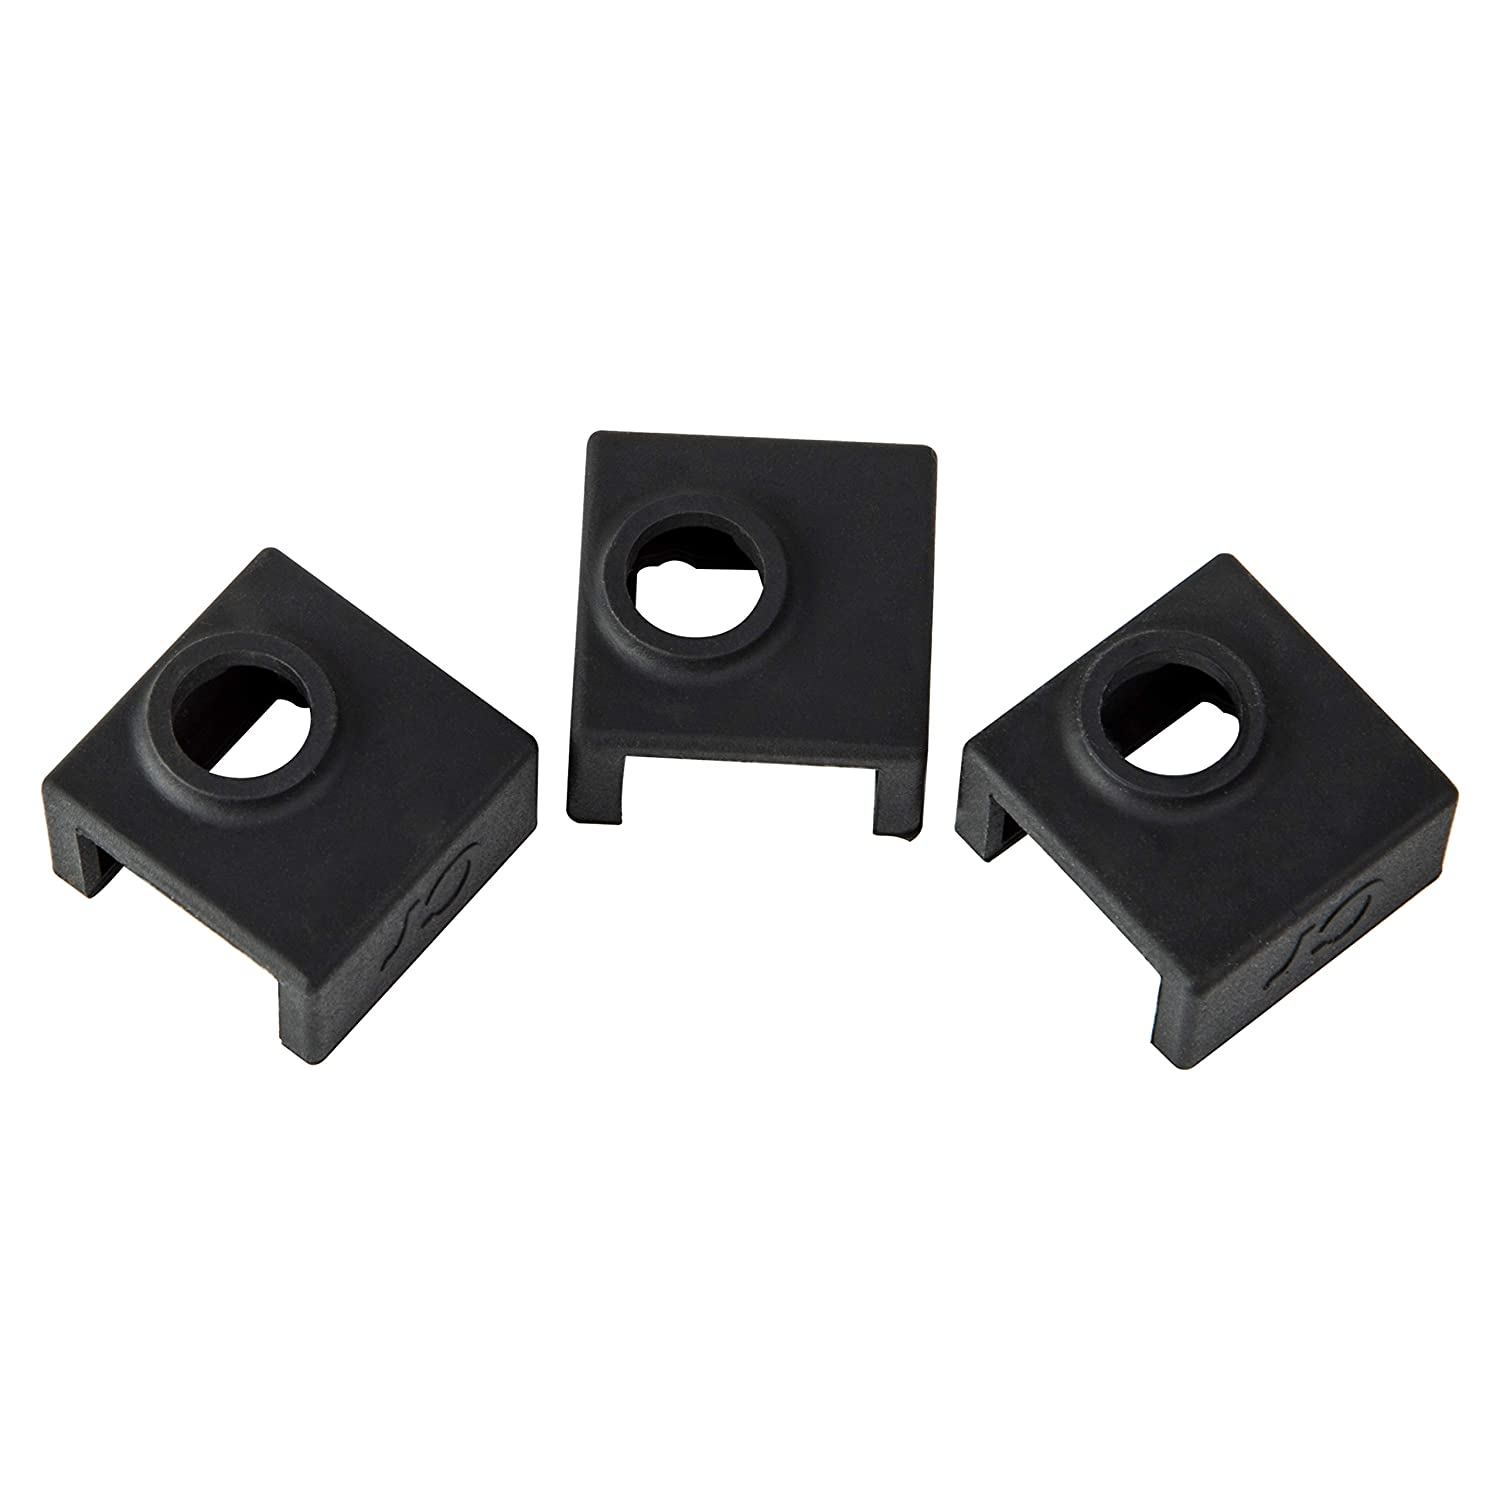 Comgrow Upgrade Heater Block Silicone Cover MK7/MK8/MK9 Hotend 3pcs Pack For Creality CR-10, 10S, 10S4, 10S5, Ender 3, CR20 Creality 3d